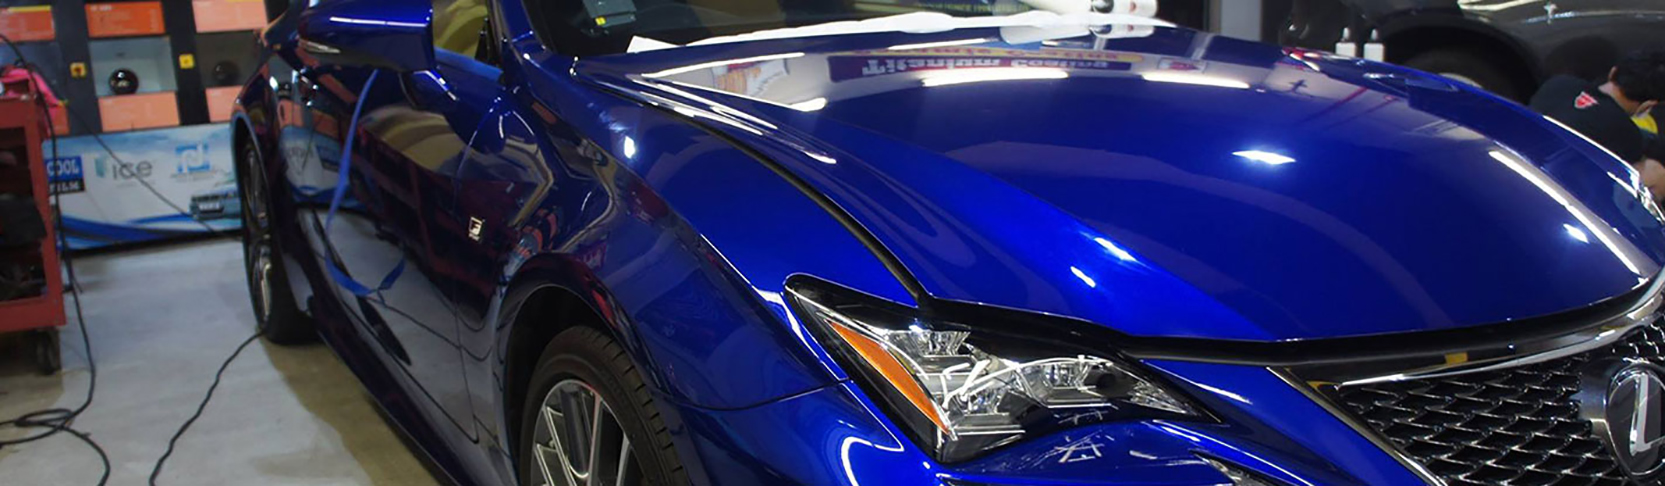 CS-II Paint Protection Blue Lexus Glossy